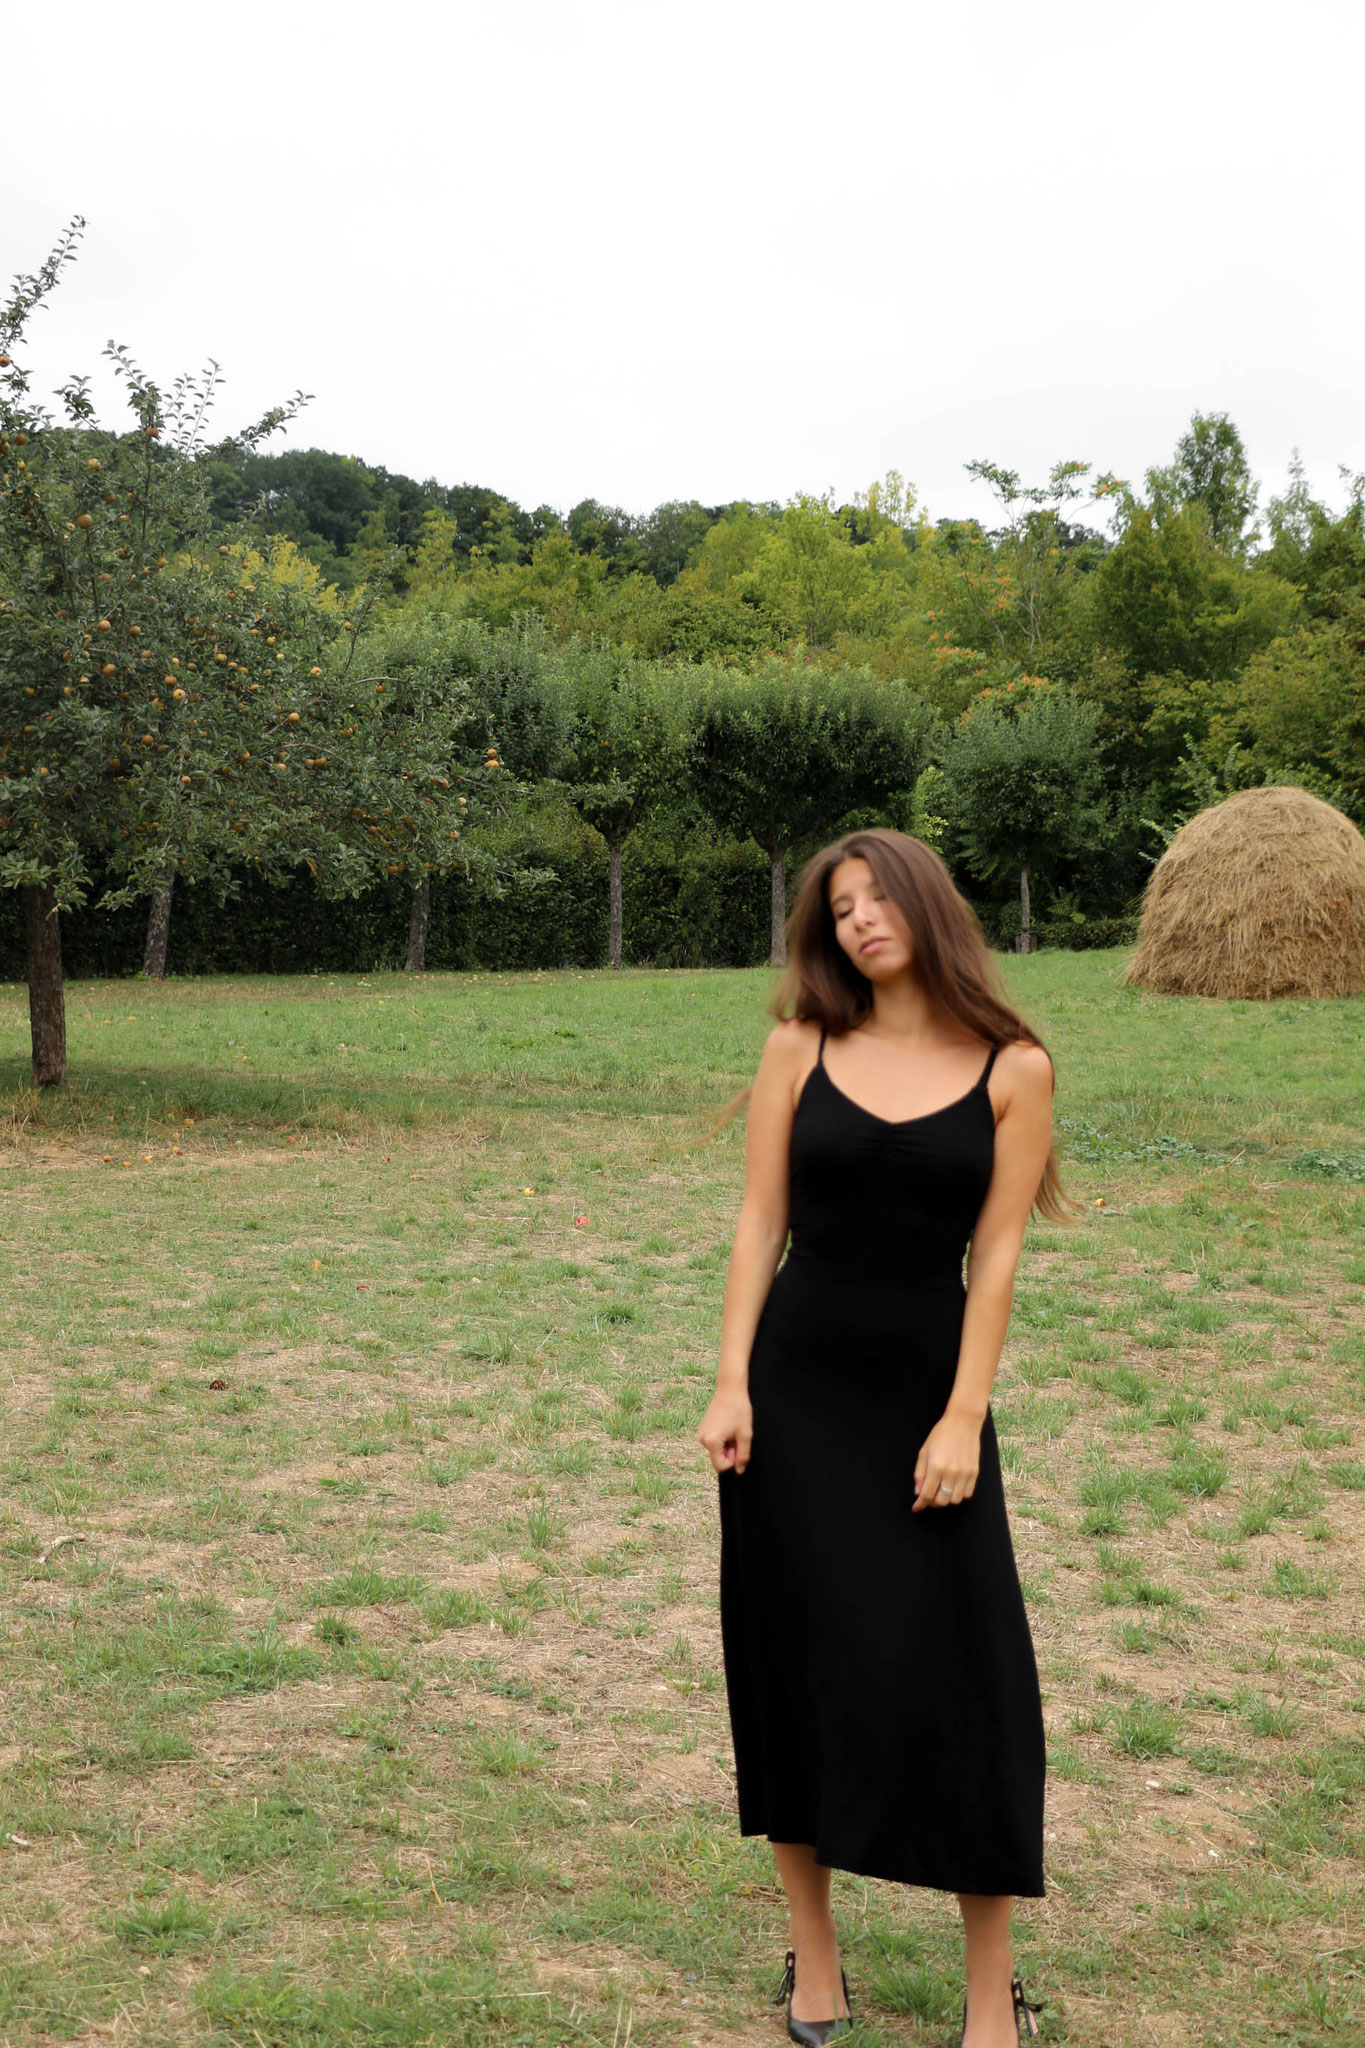 Black Summerdress, Giverny France, Carmen Schubert